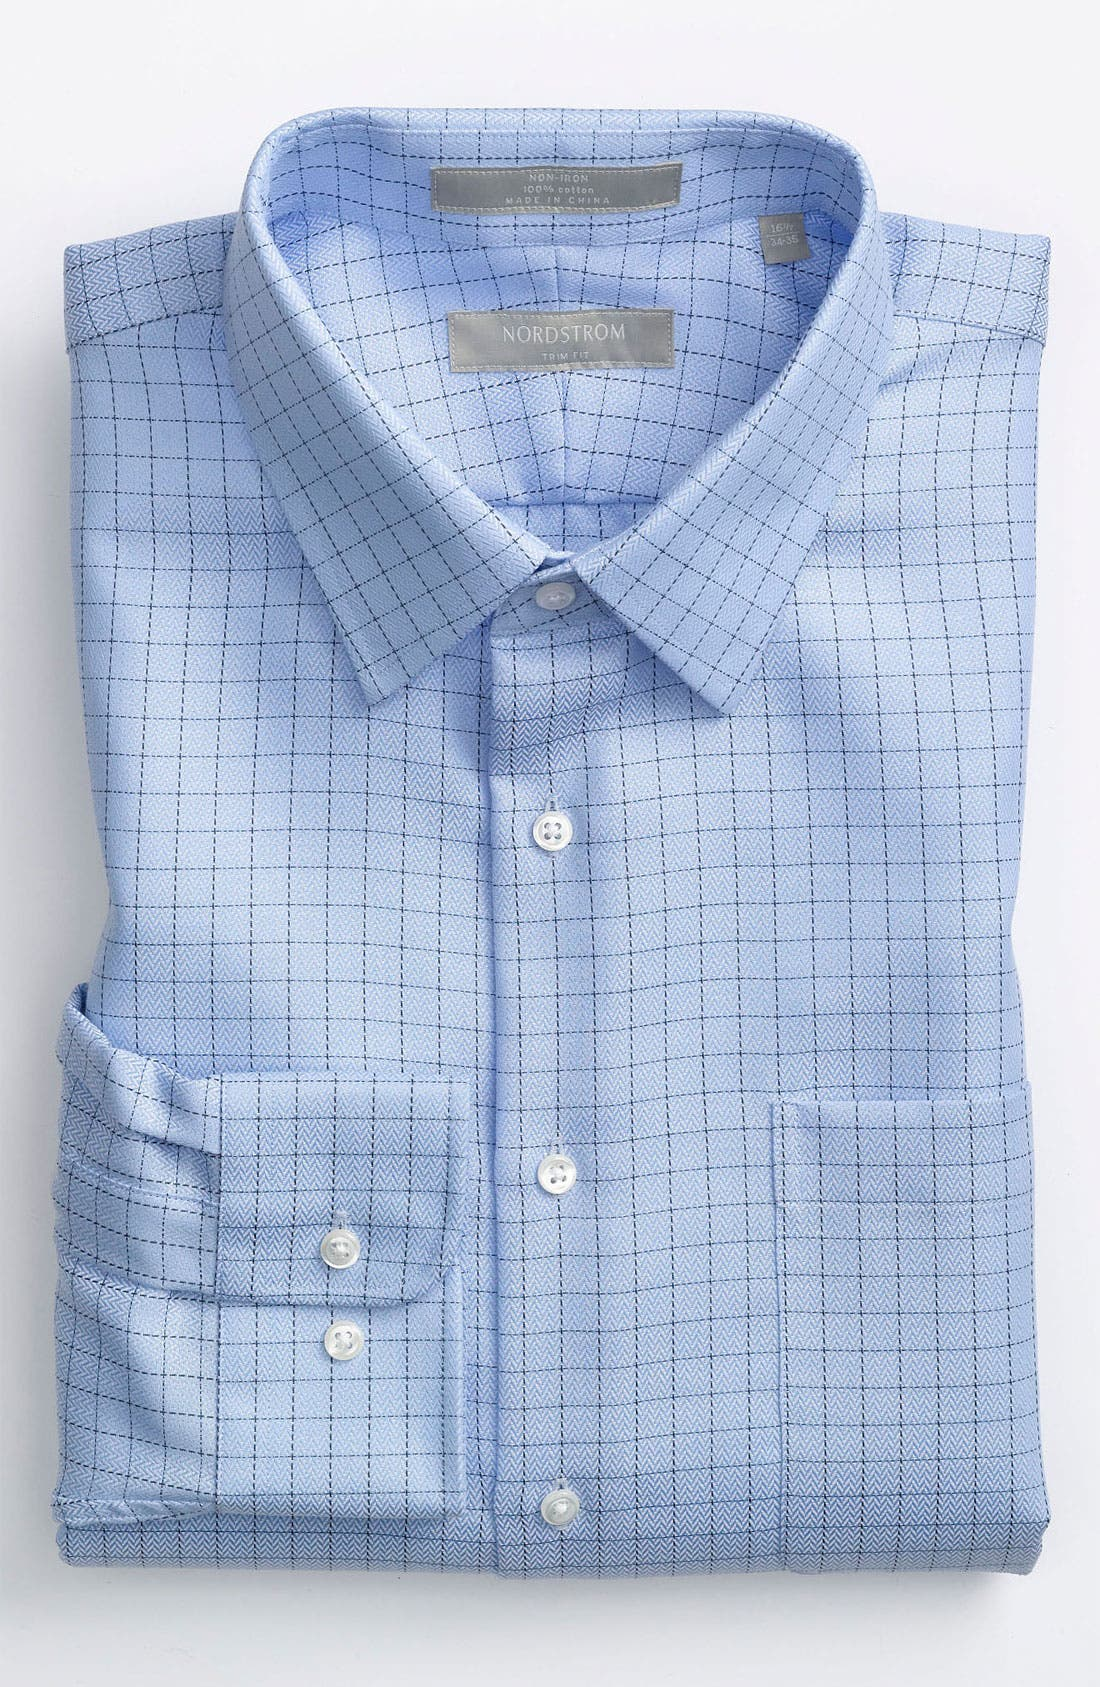 Main Image - Nordstrom Trim Fit Non-Iron Dress Shirt